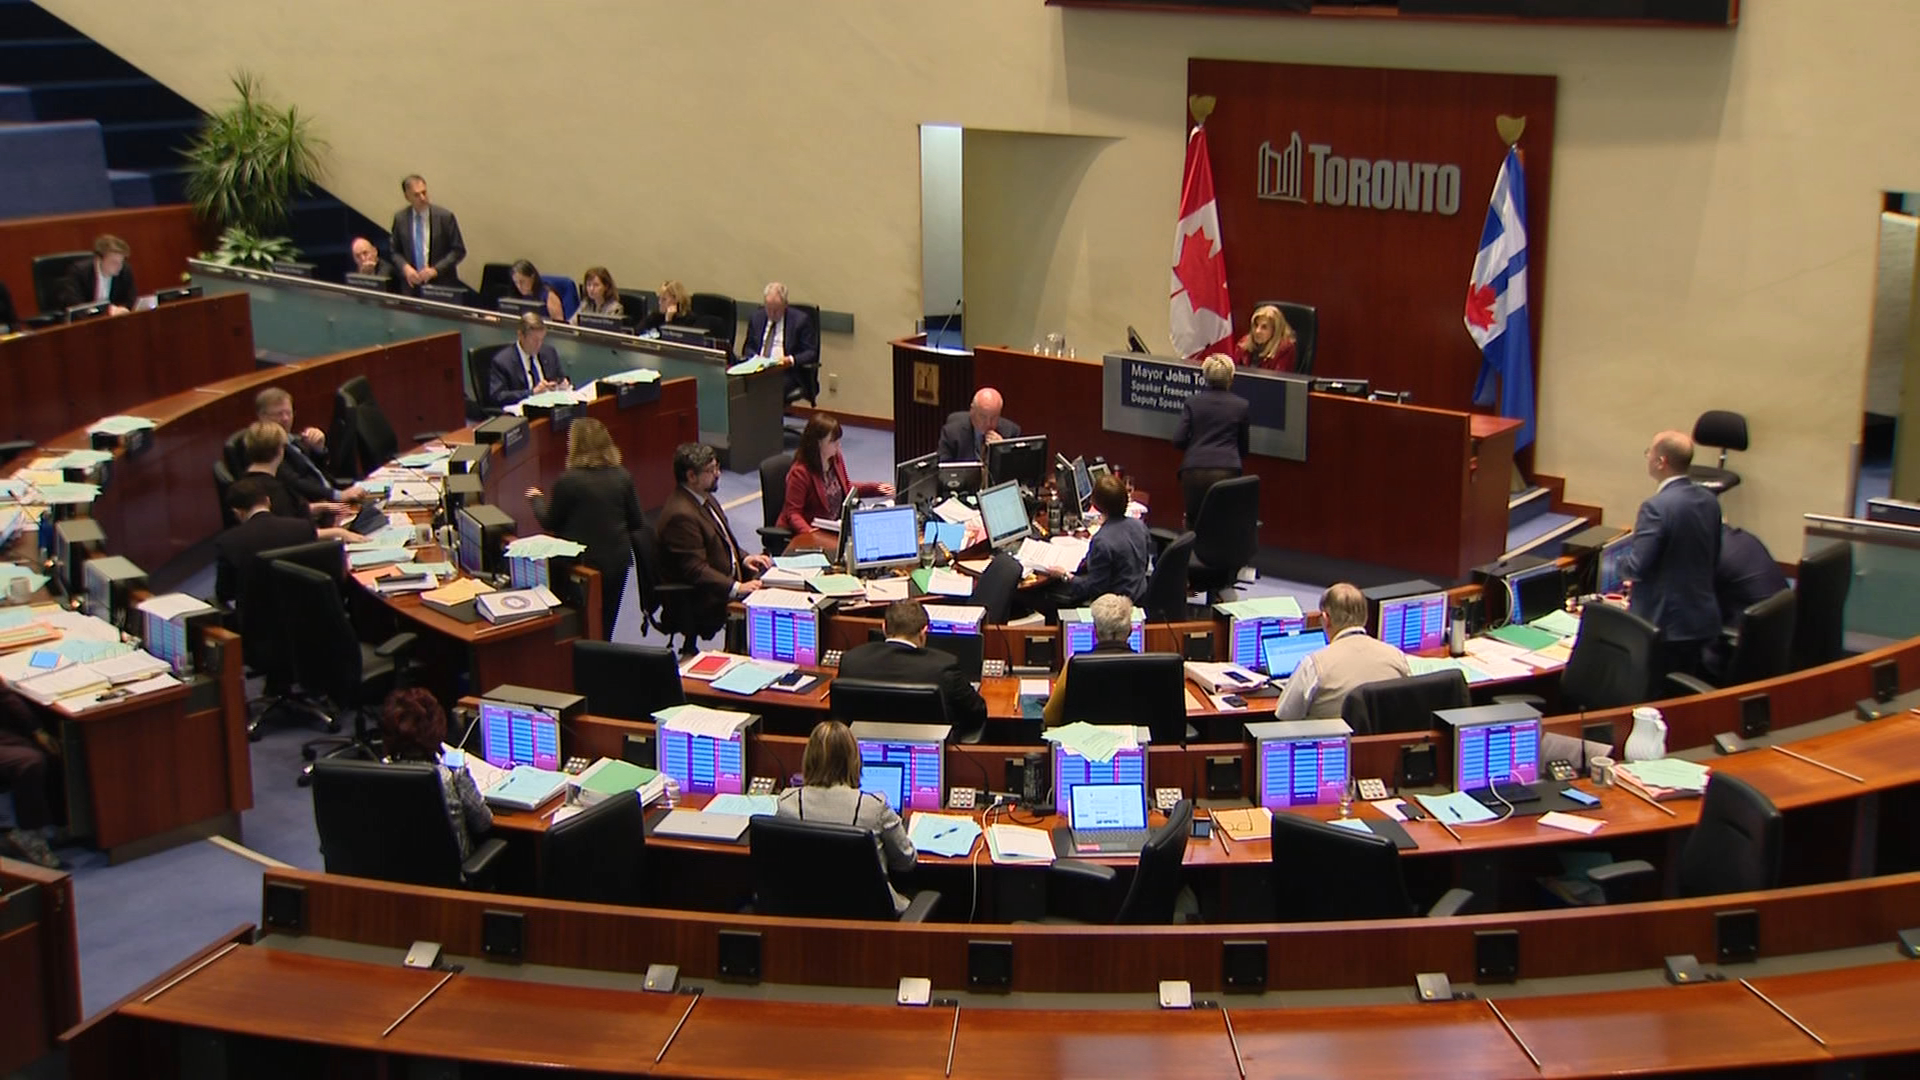 Total property tax hike of 4.24 per cent approved in city budget